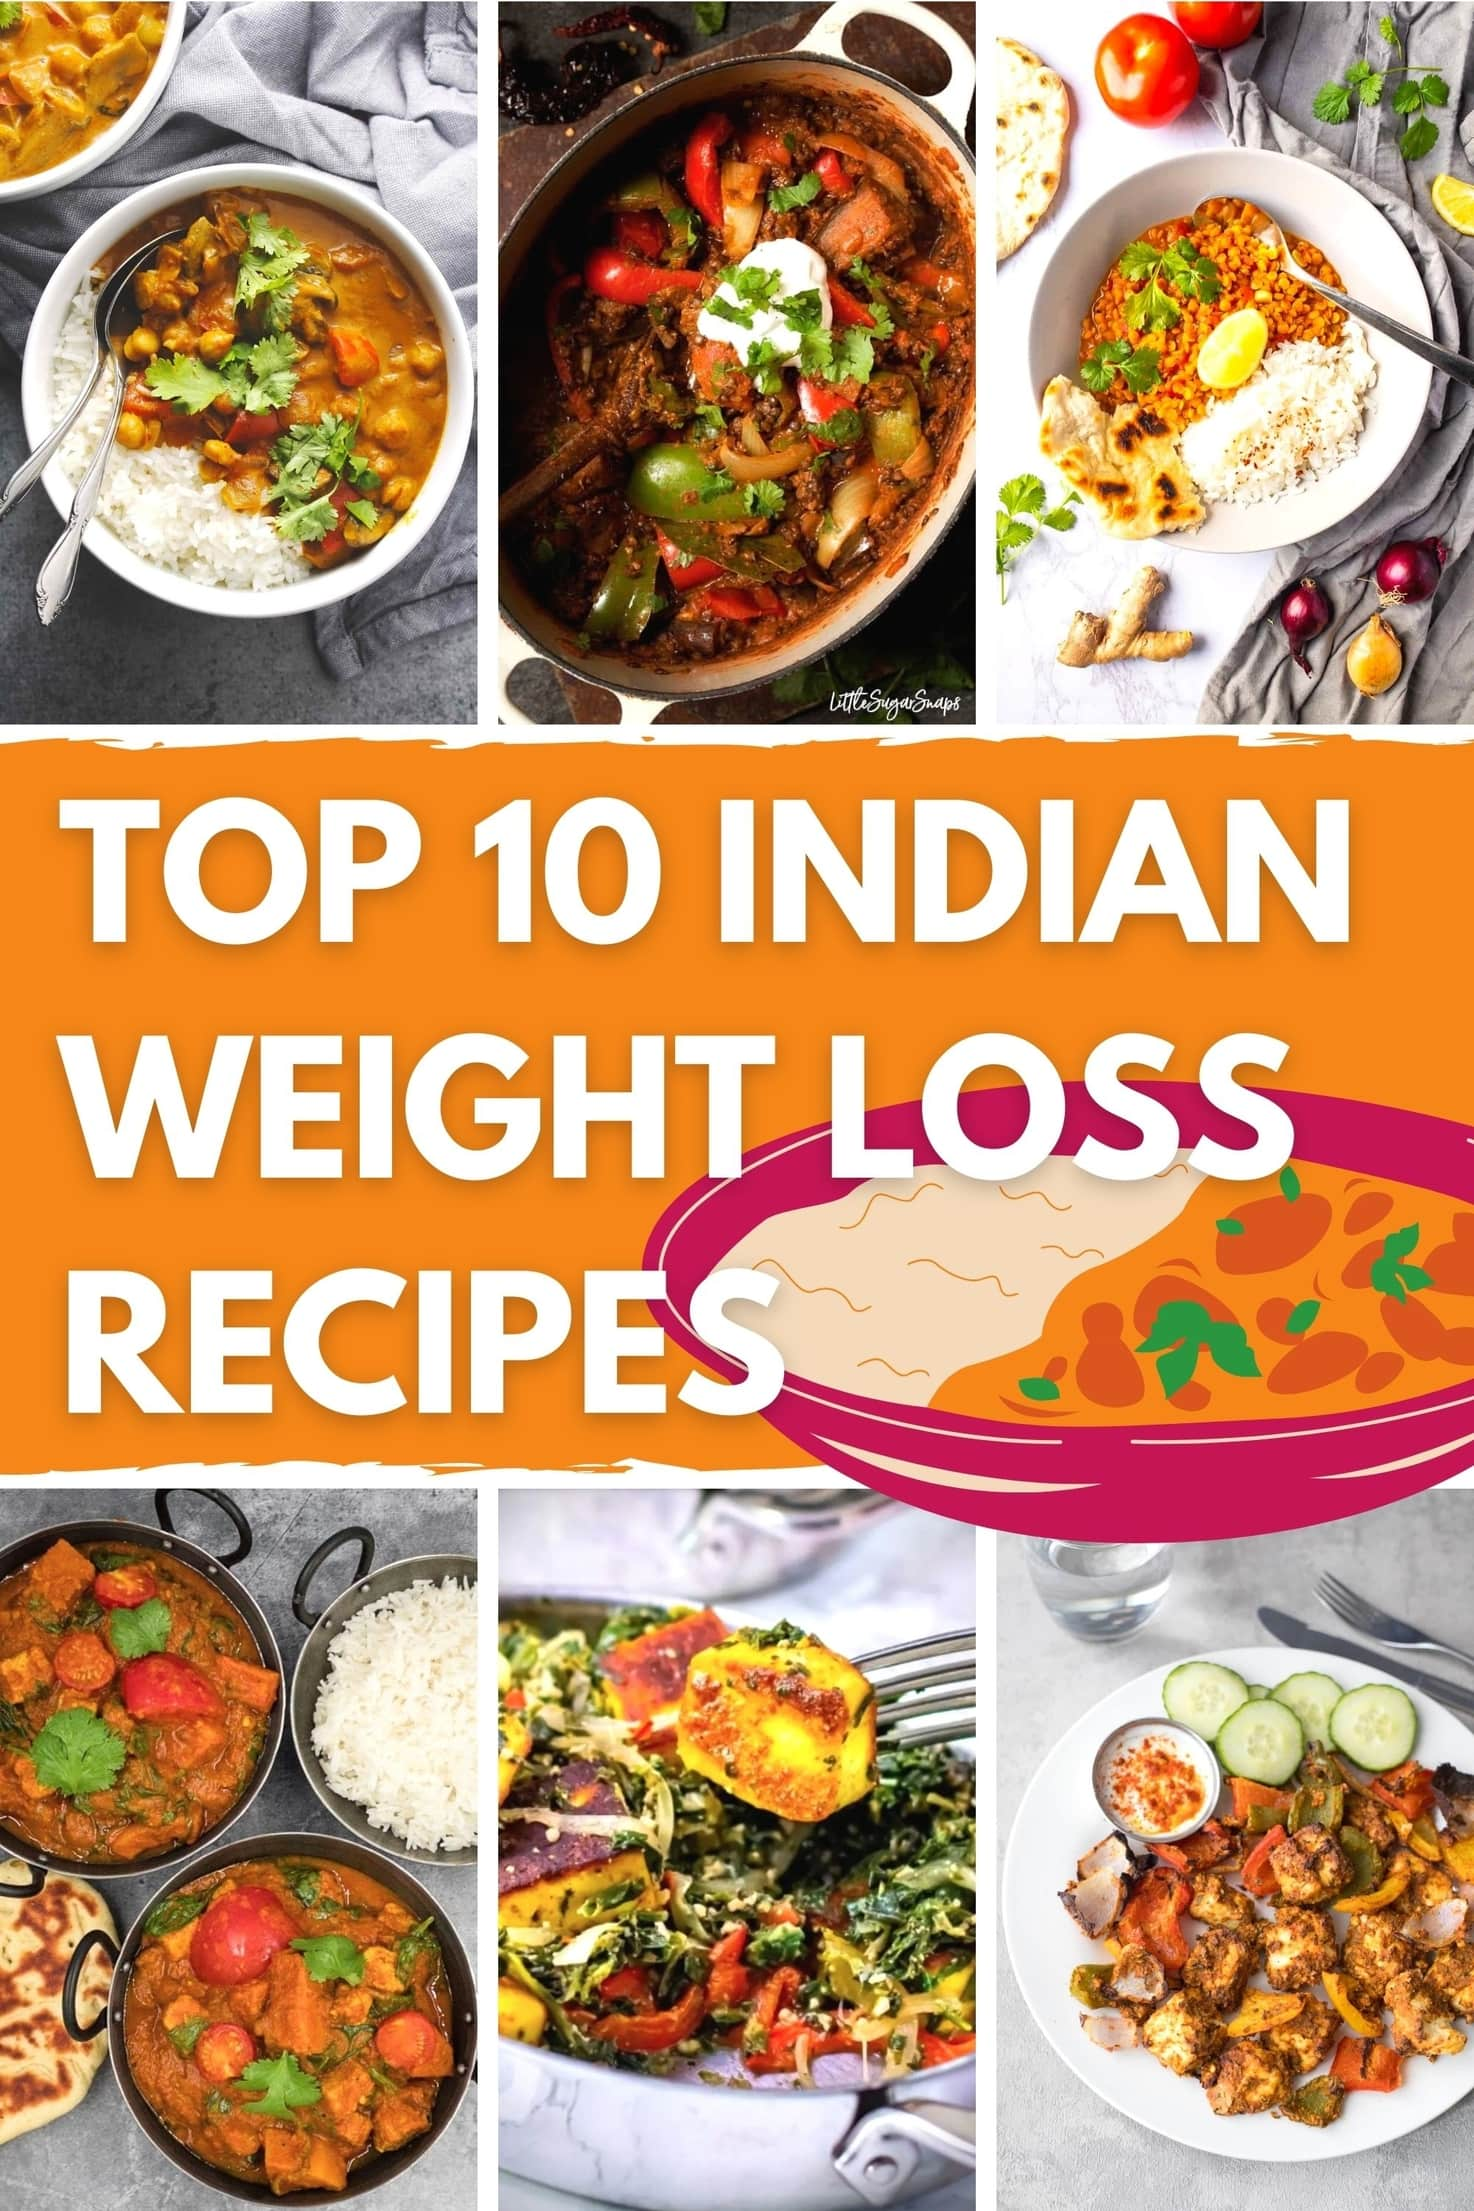 Top 10 Indian Recipes for Weight Loss - Title Image | Hurry The Food Up